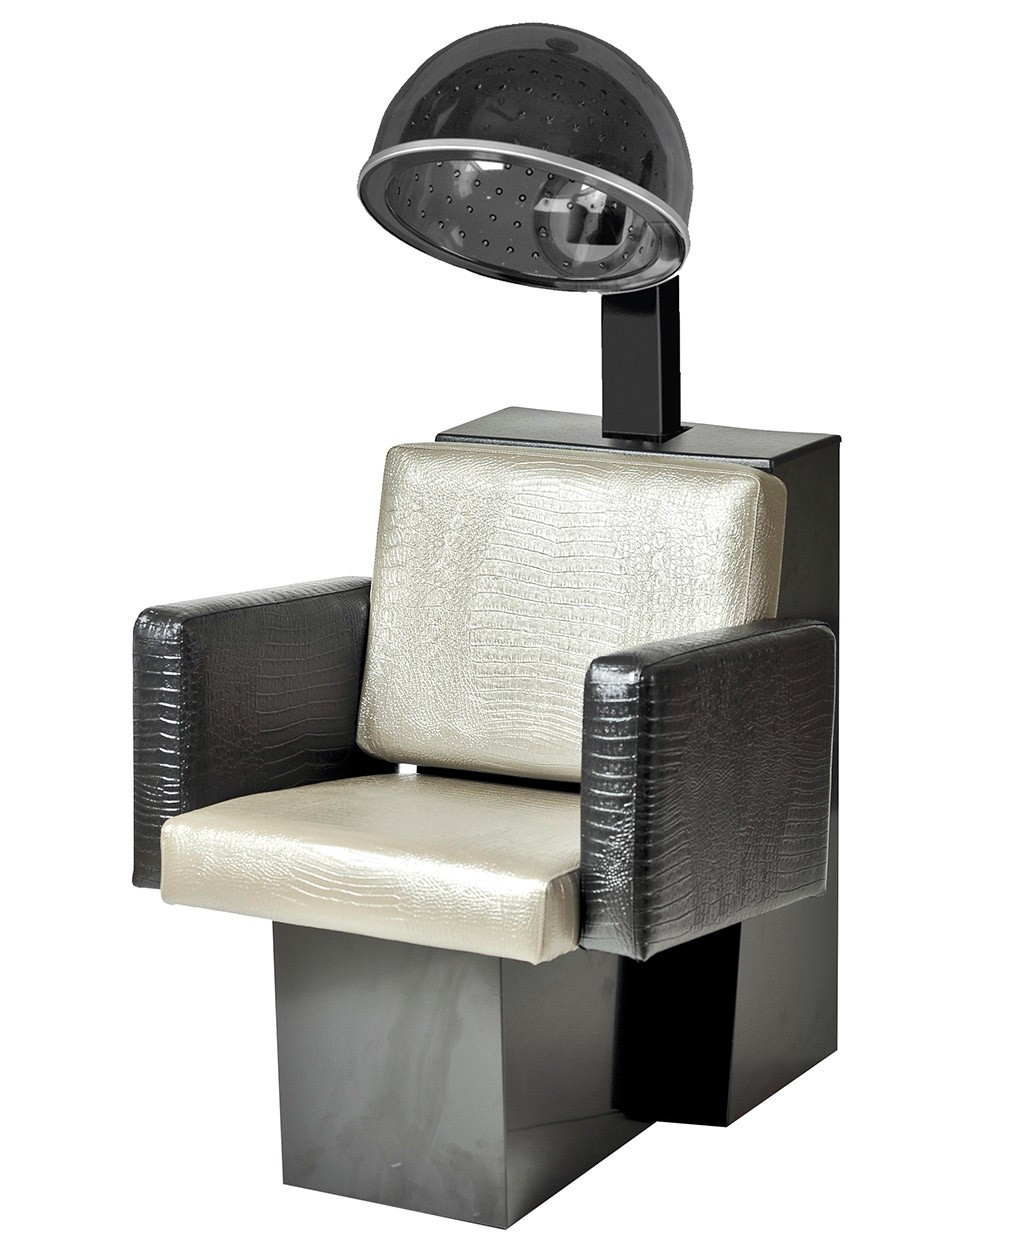 Salon Dryer Chair Pibbs 3469 Cosmo Dryer Chair